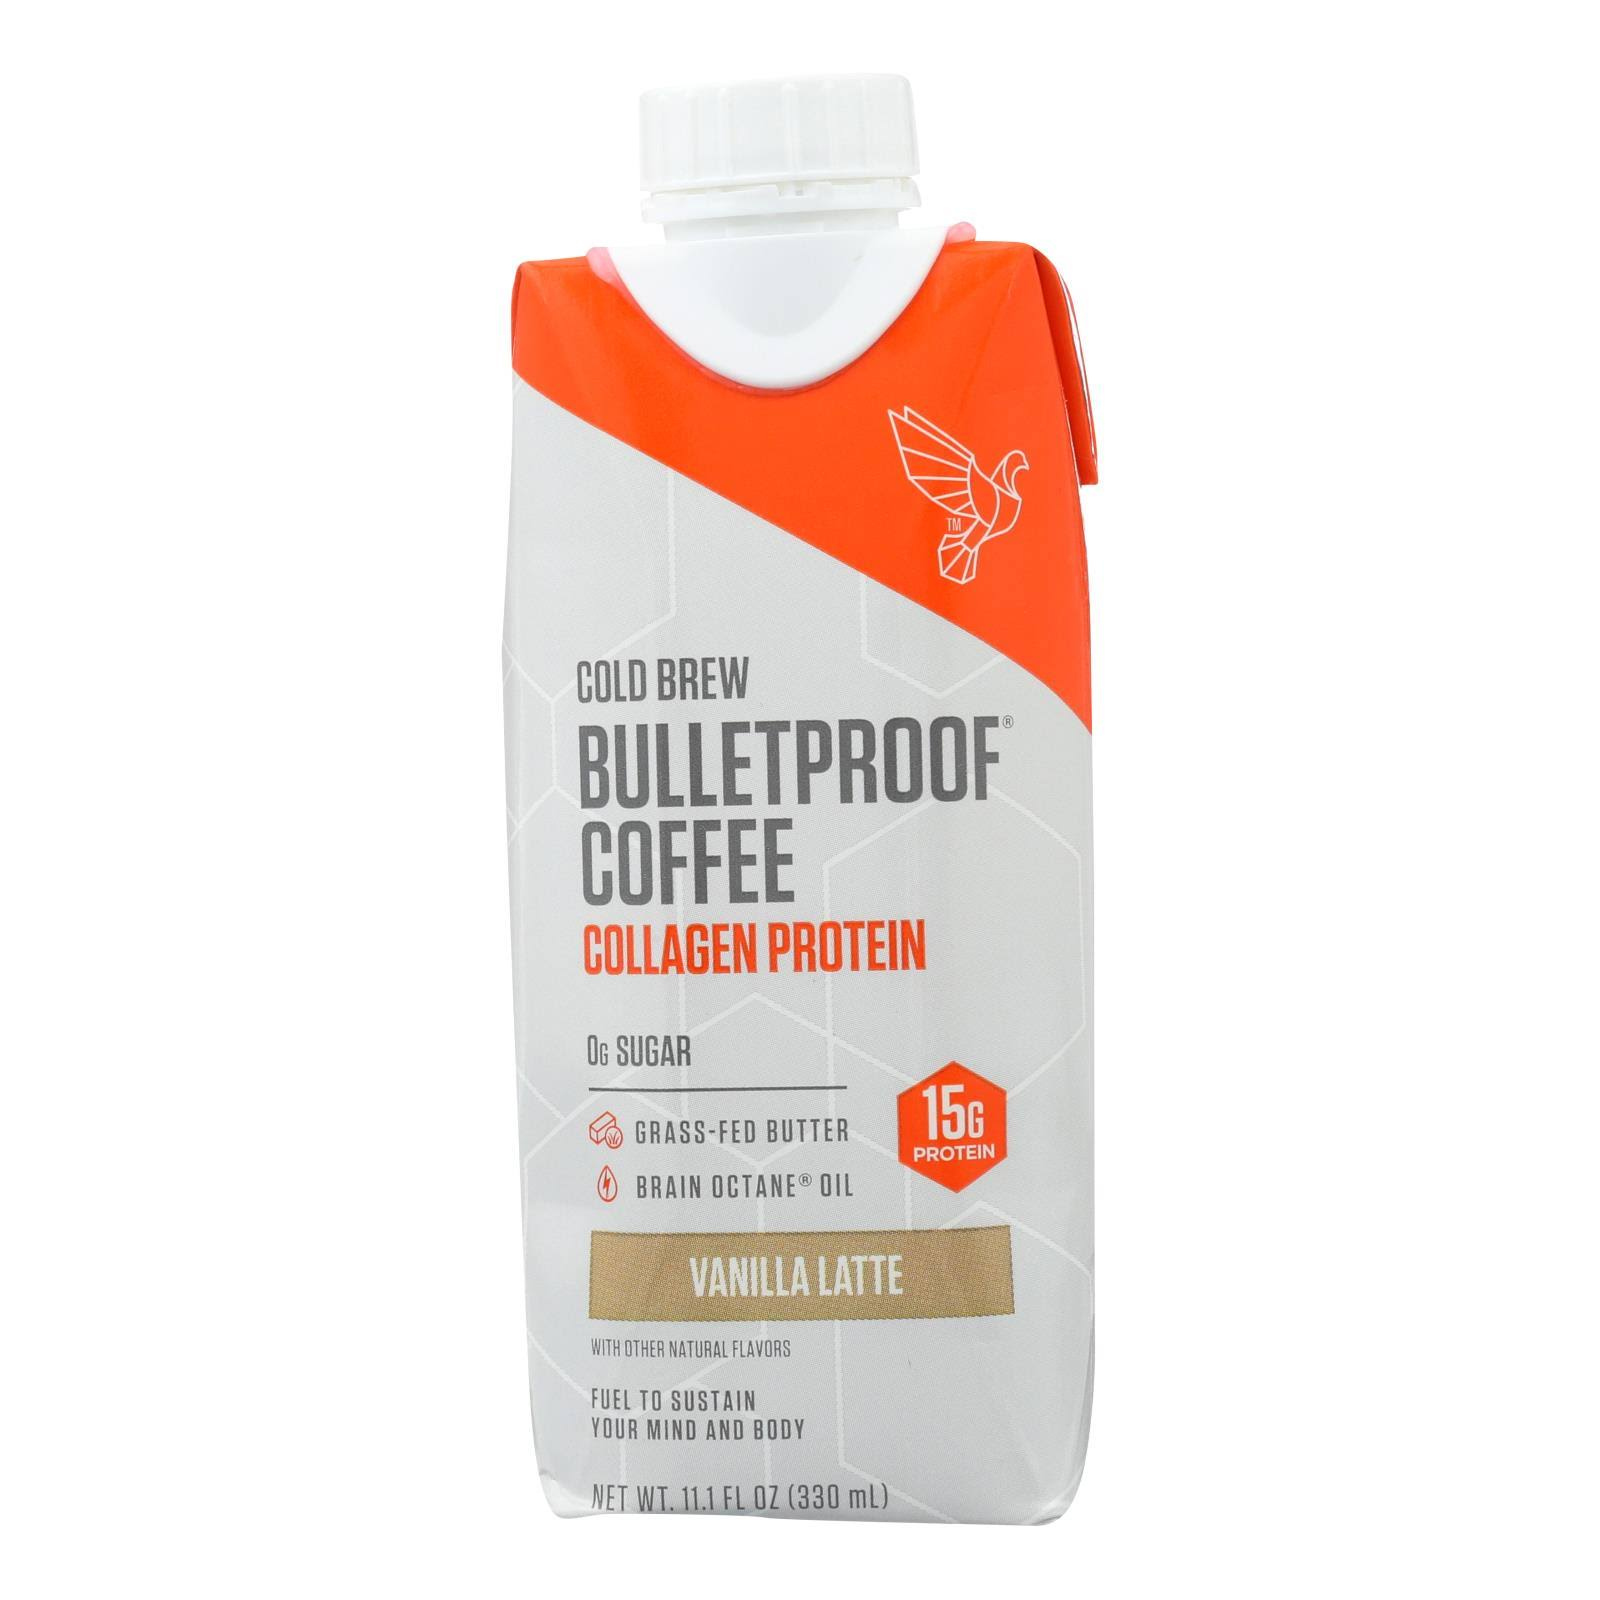 Bulletproof Cold Brew Coffee Collagen Protein Vanilla Latte, 11.1 fl oz